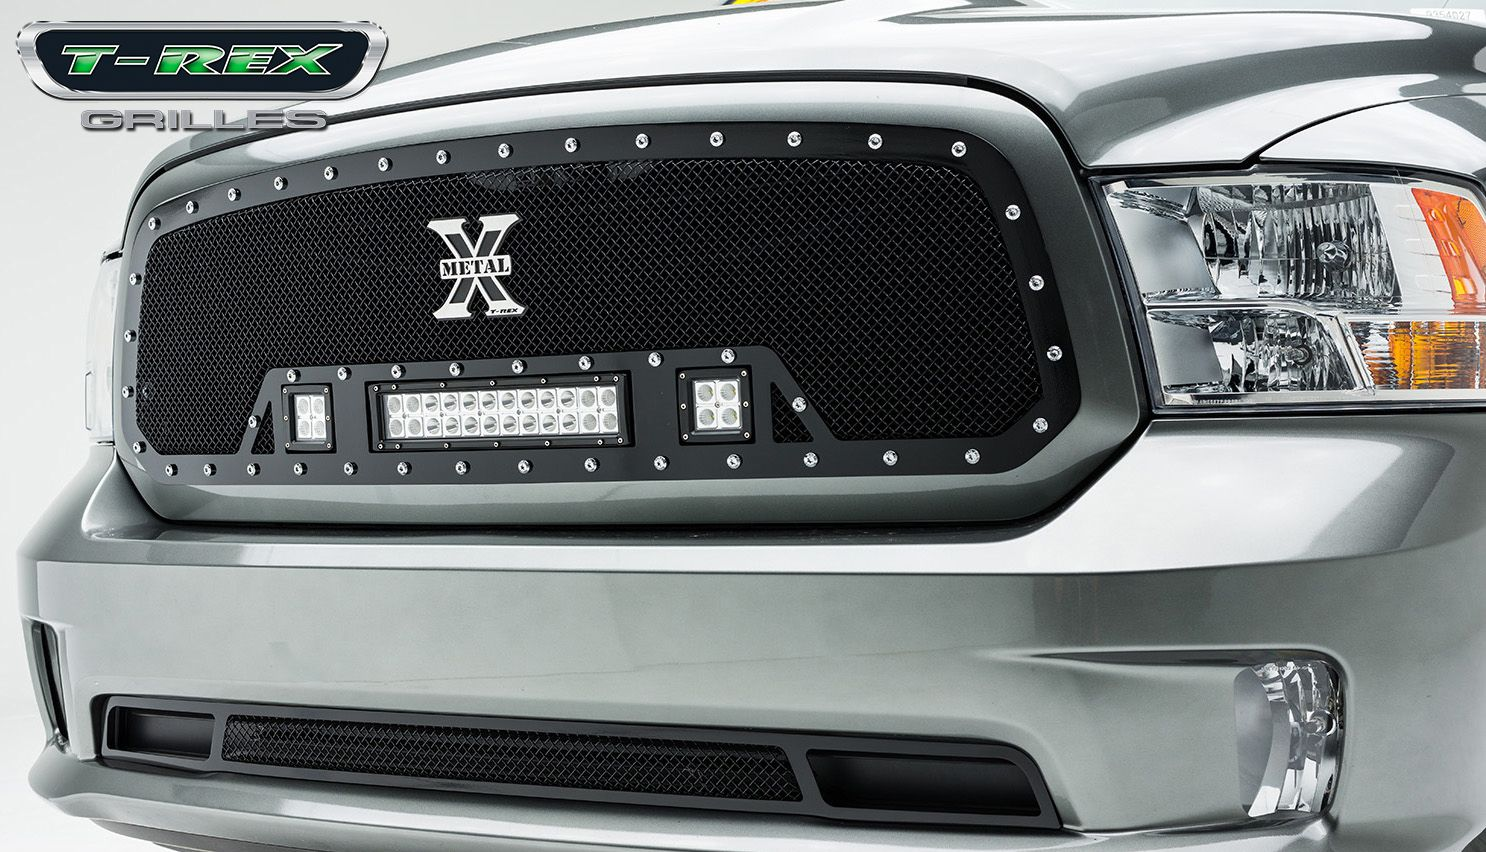 2013 Dodge Ram 1500 Torch Series Led Light Grille Formed 2010 2500 Wiring Diagram Mesh Main Full Opening Requires Cutting Factory Cross Bar In Oem For